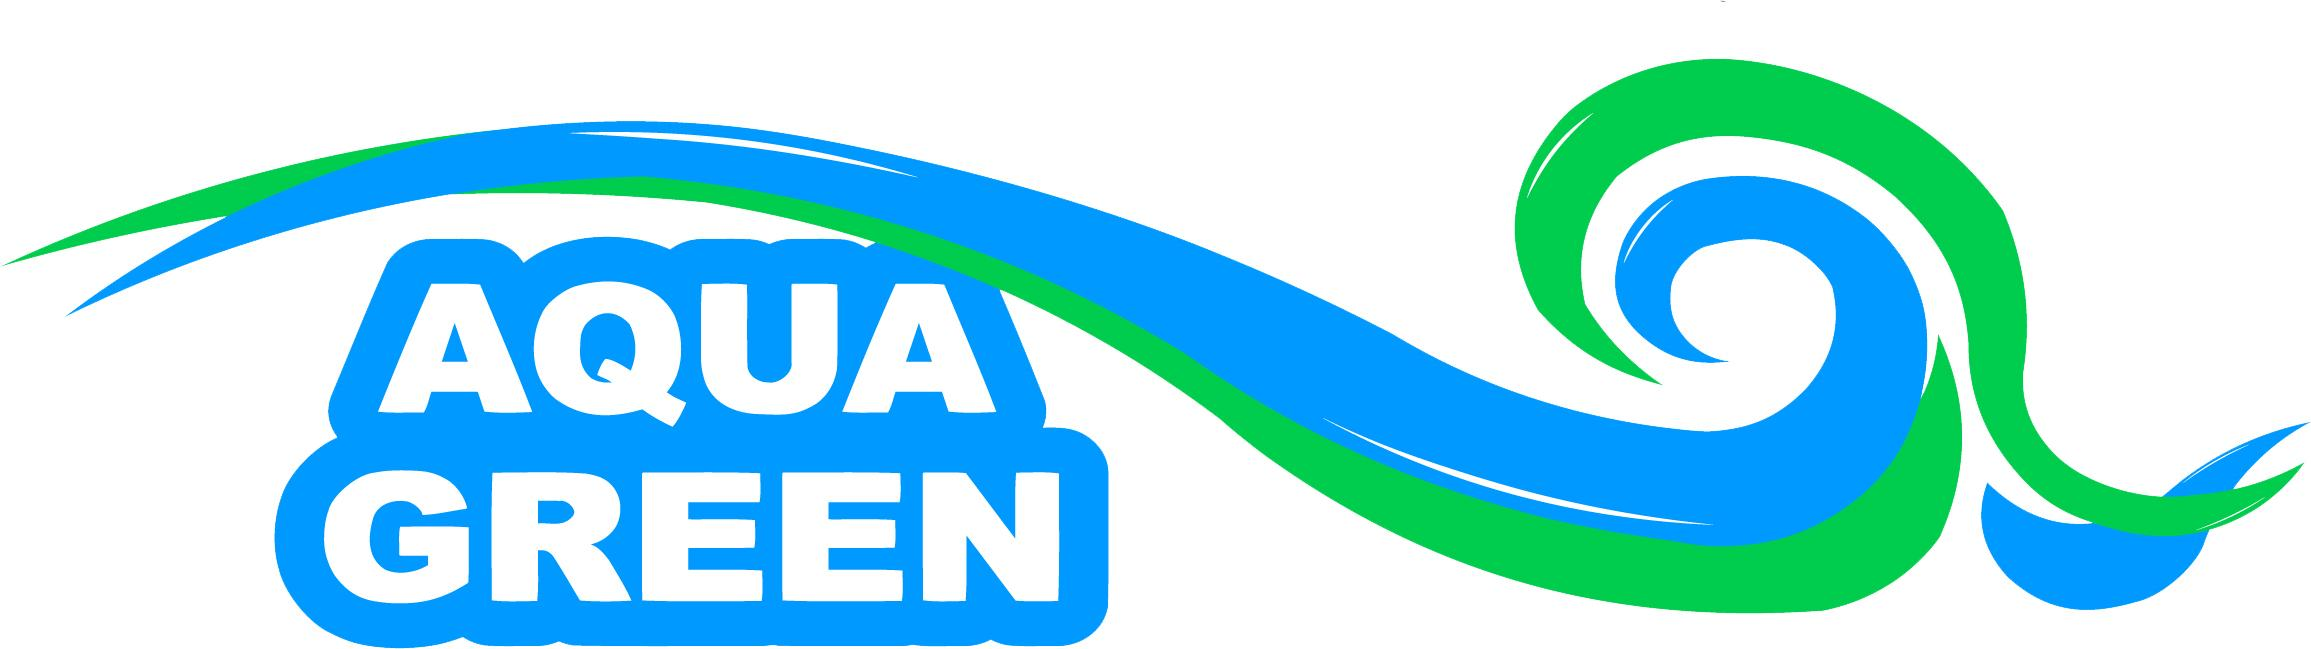 aquagreen logo_10